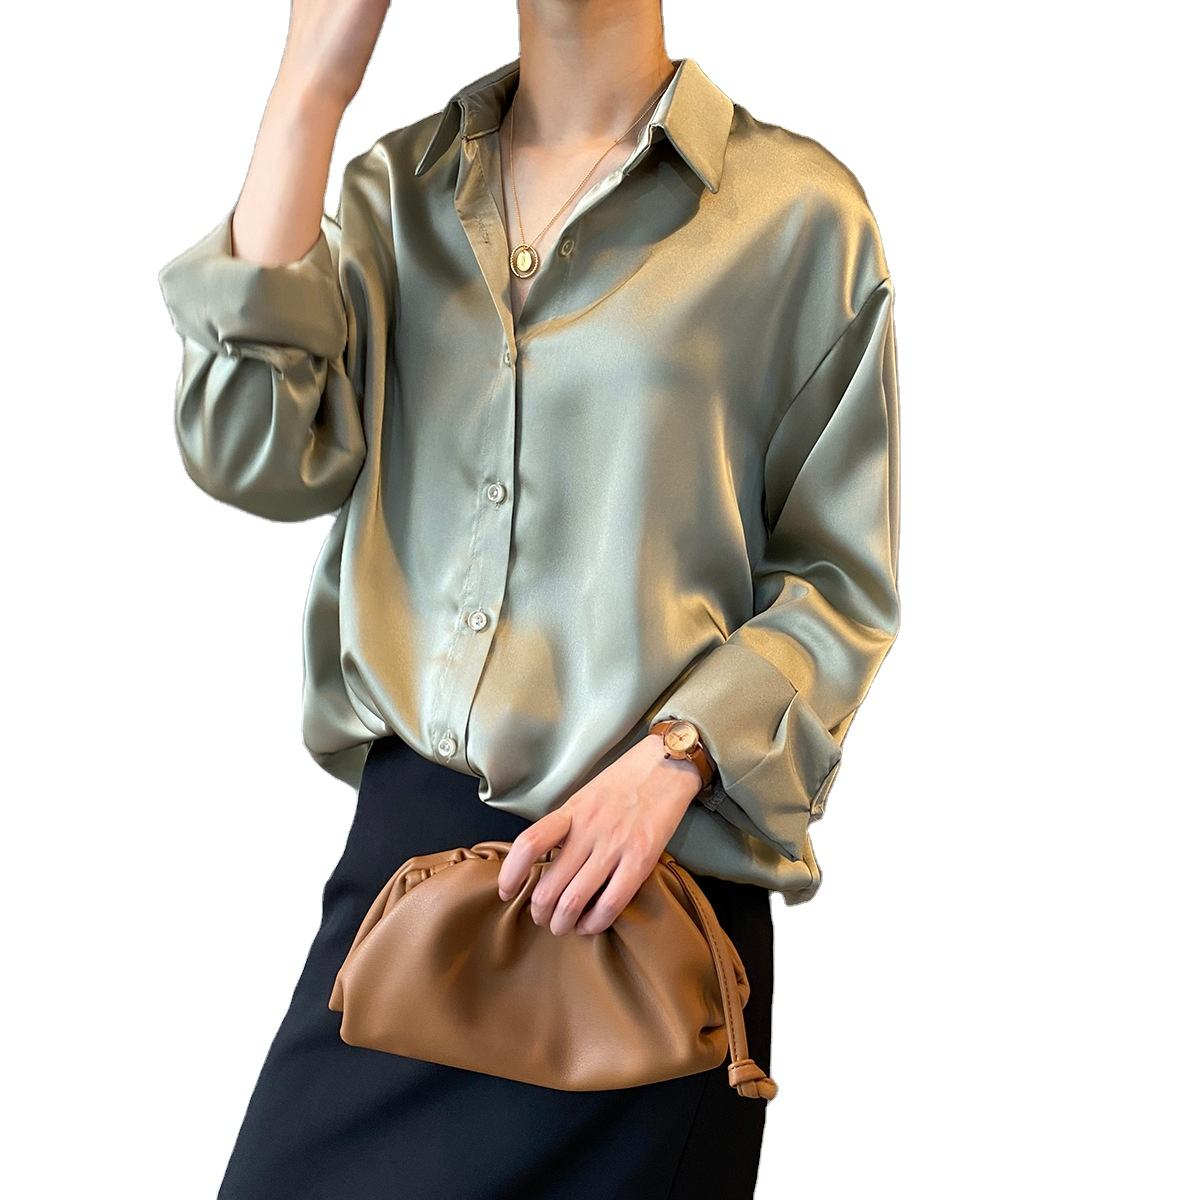 2020 New Spring Women Fashion Long Sleeves Satin Blouse Vintage Femme V Neck Street Shirts Elegant Silk Blouse